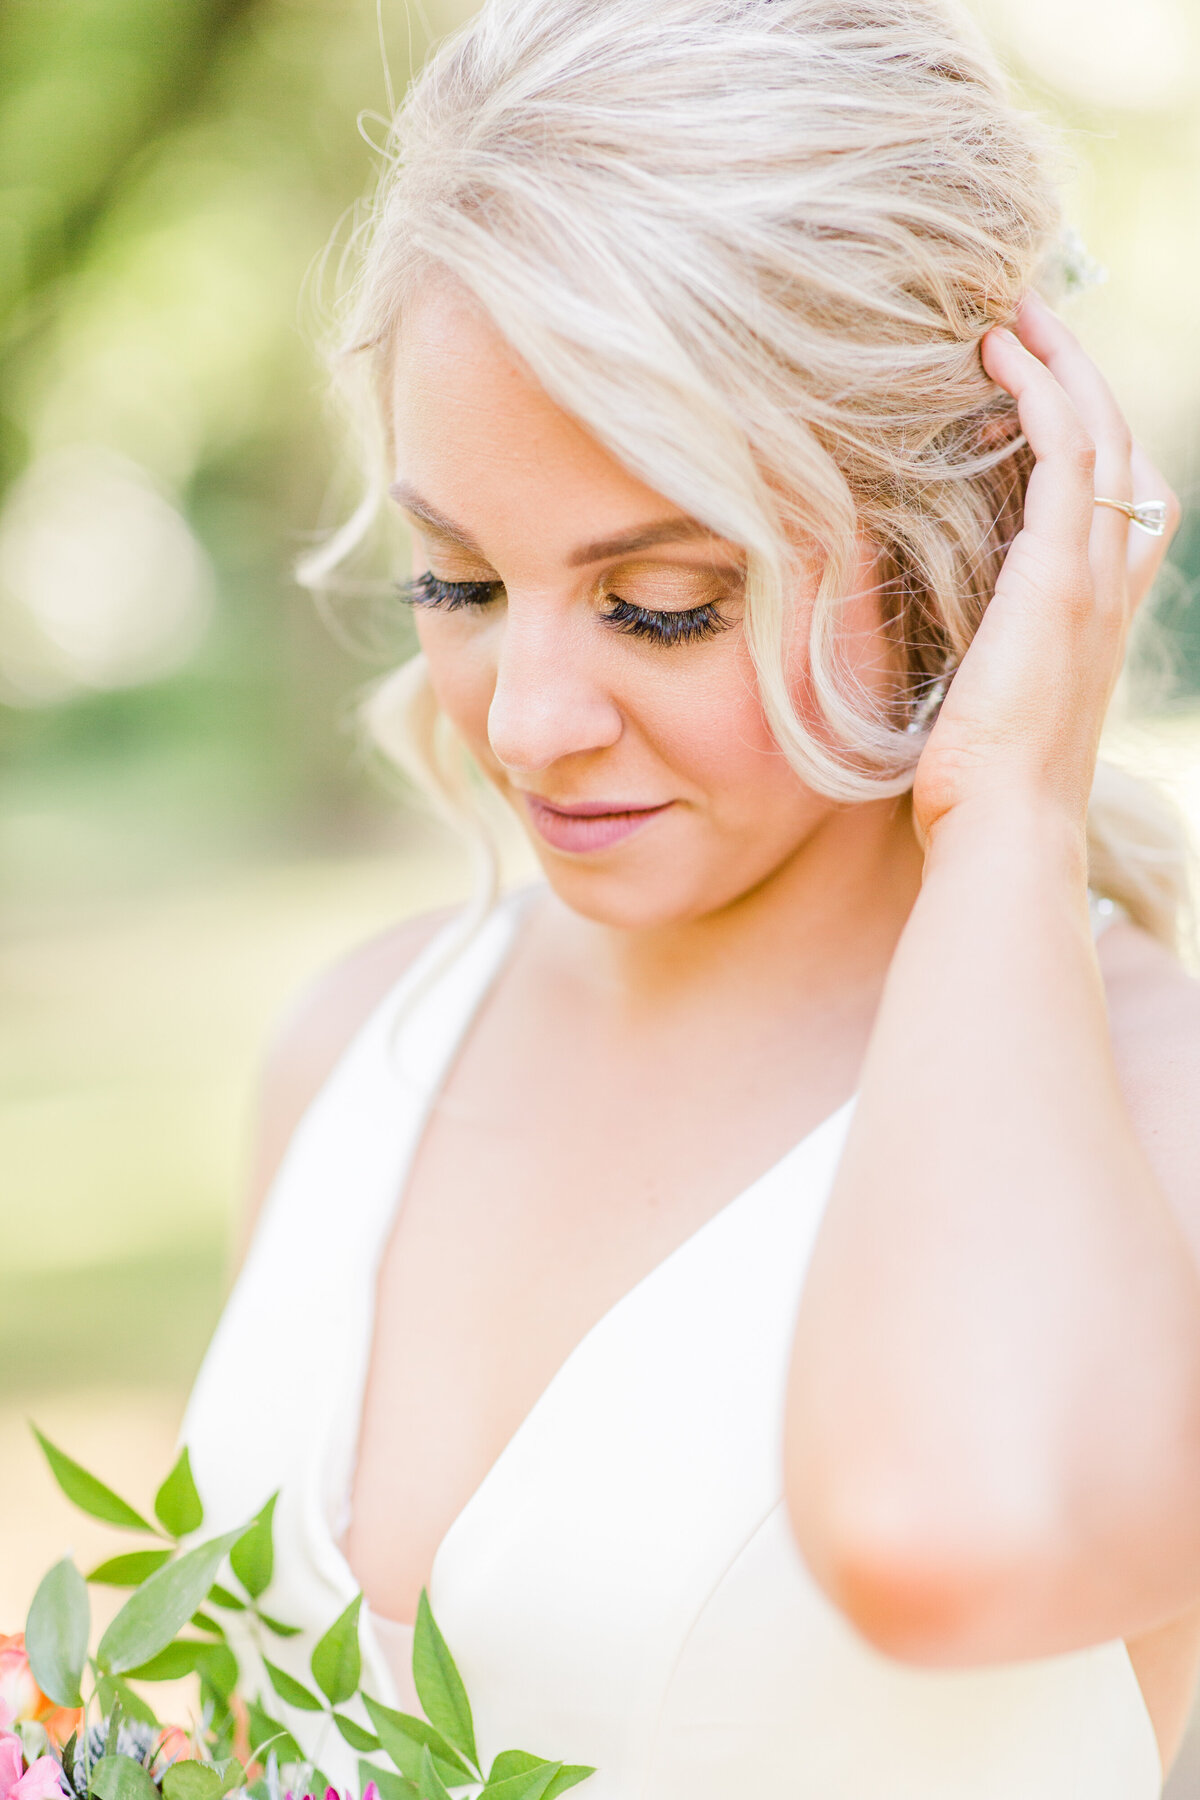 Renee Lorio Photography South Louisiana Wedding Engagement Light Airy Portrait Photographer Photos Southern Clean Colorful167777789